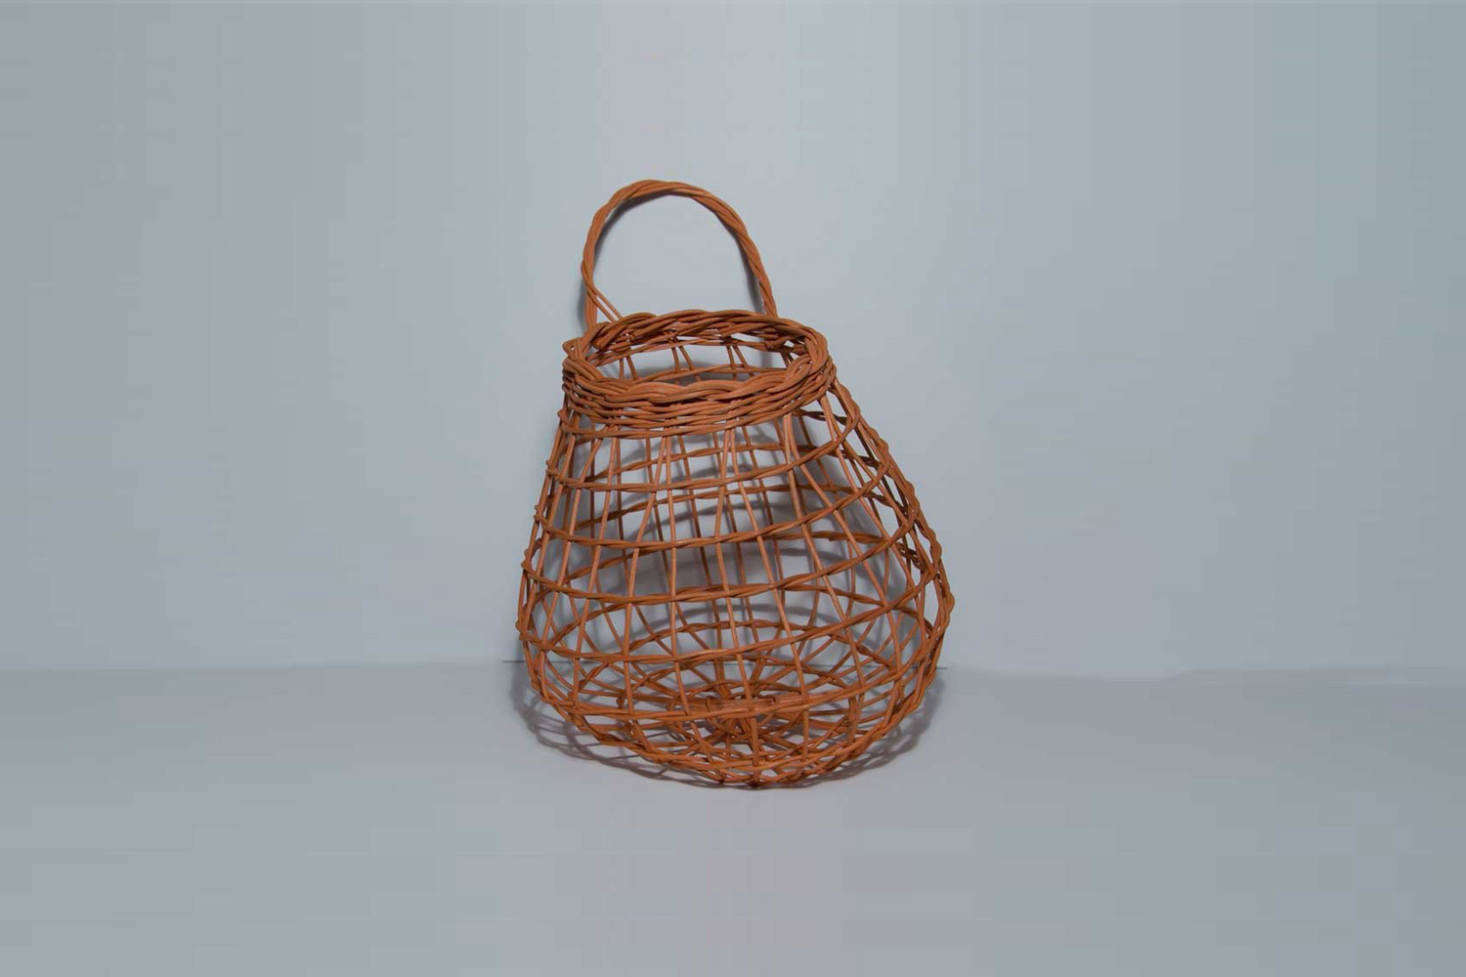 From Etsy seller Justa Bunch of Baskets, the Rust Onion Basket made of hand-dyed round reed, is $65.